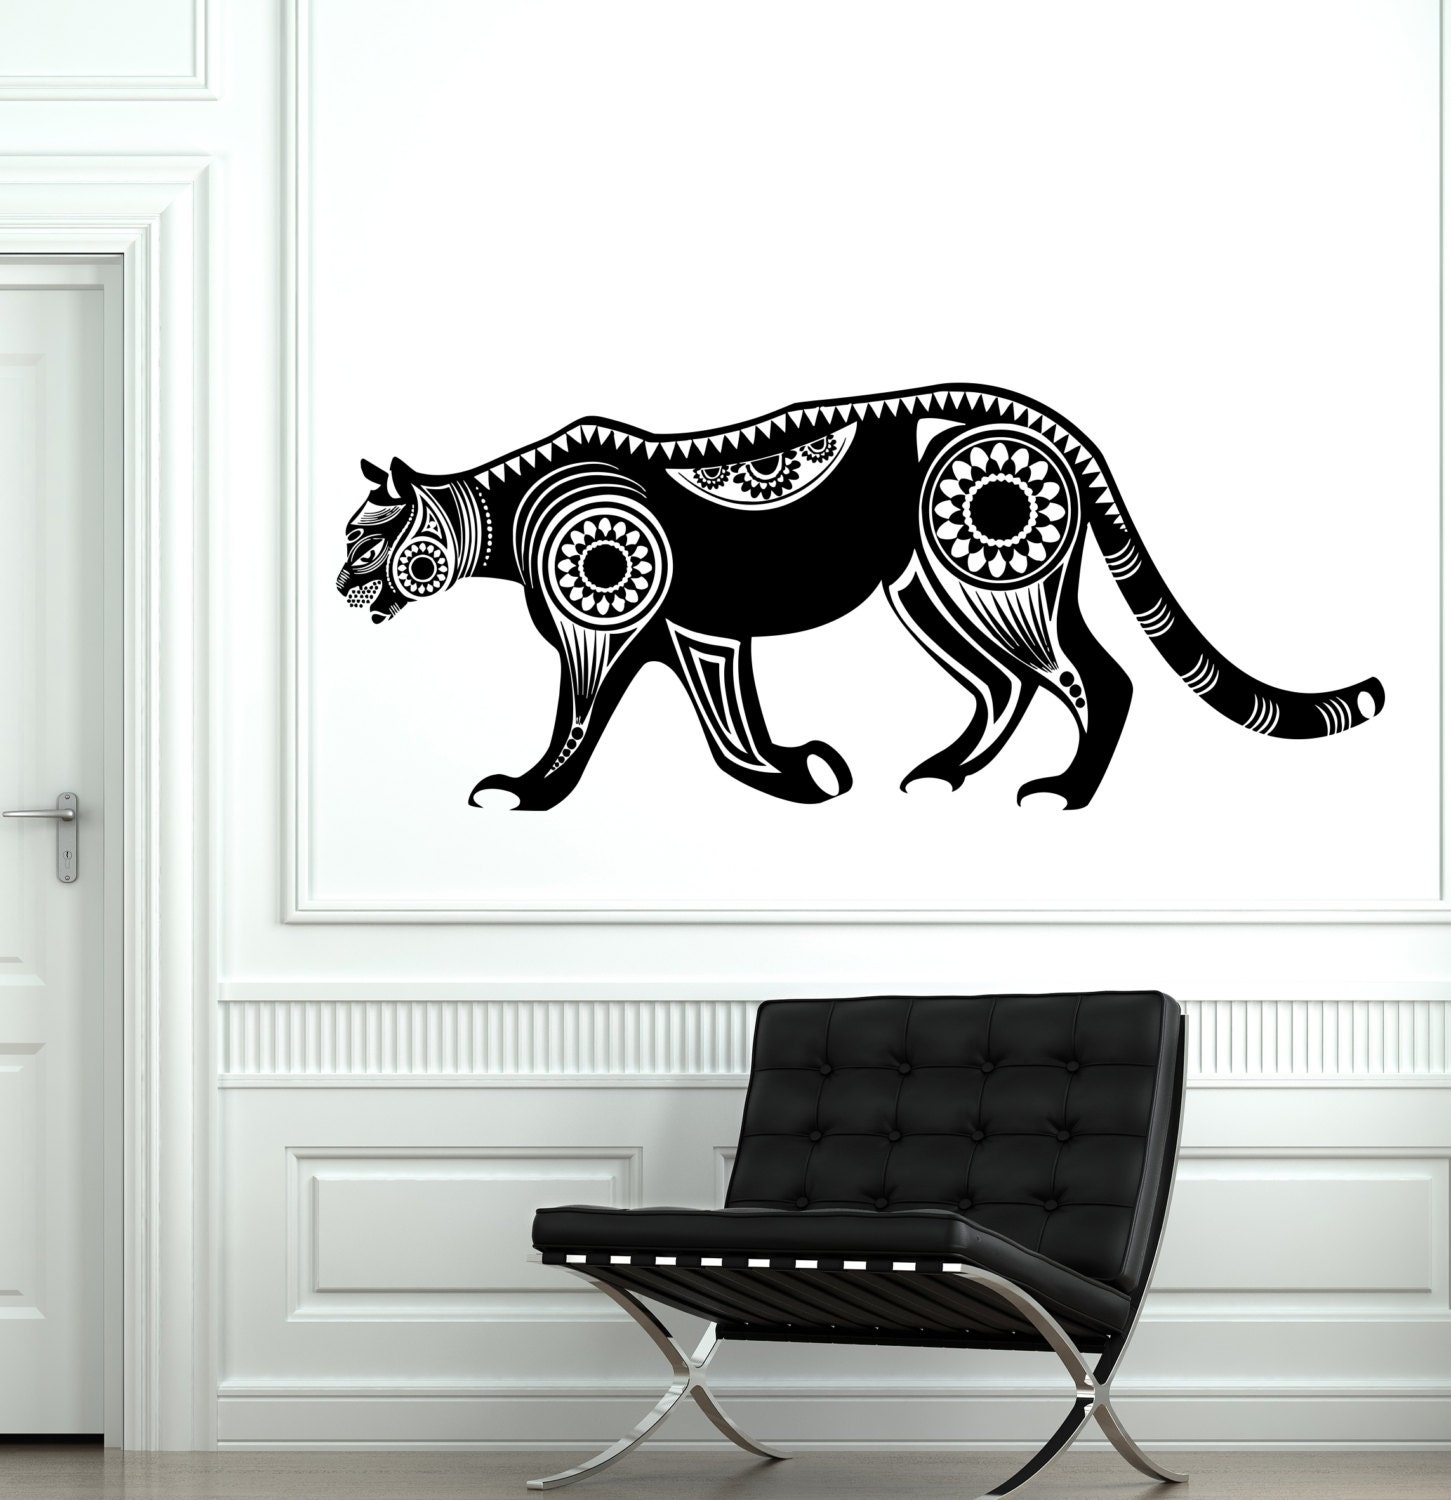 Wall vinyl panther mountain lion animal symbol ornament mural for Black panther mural